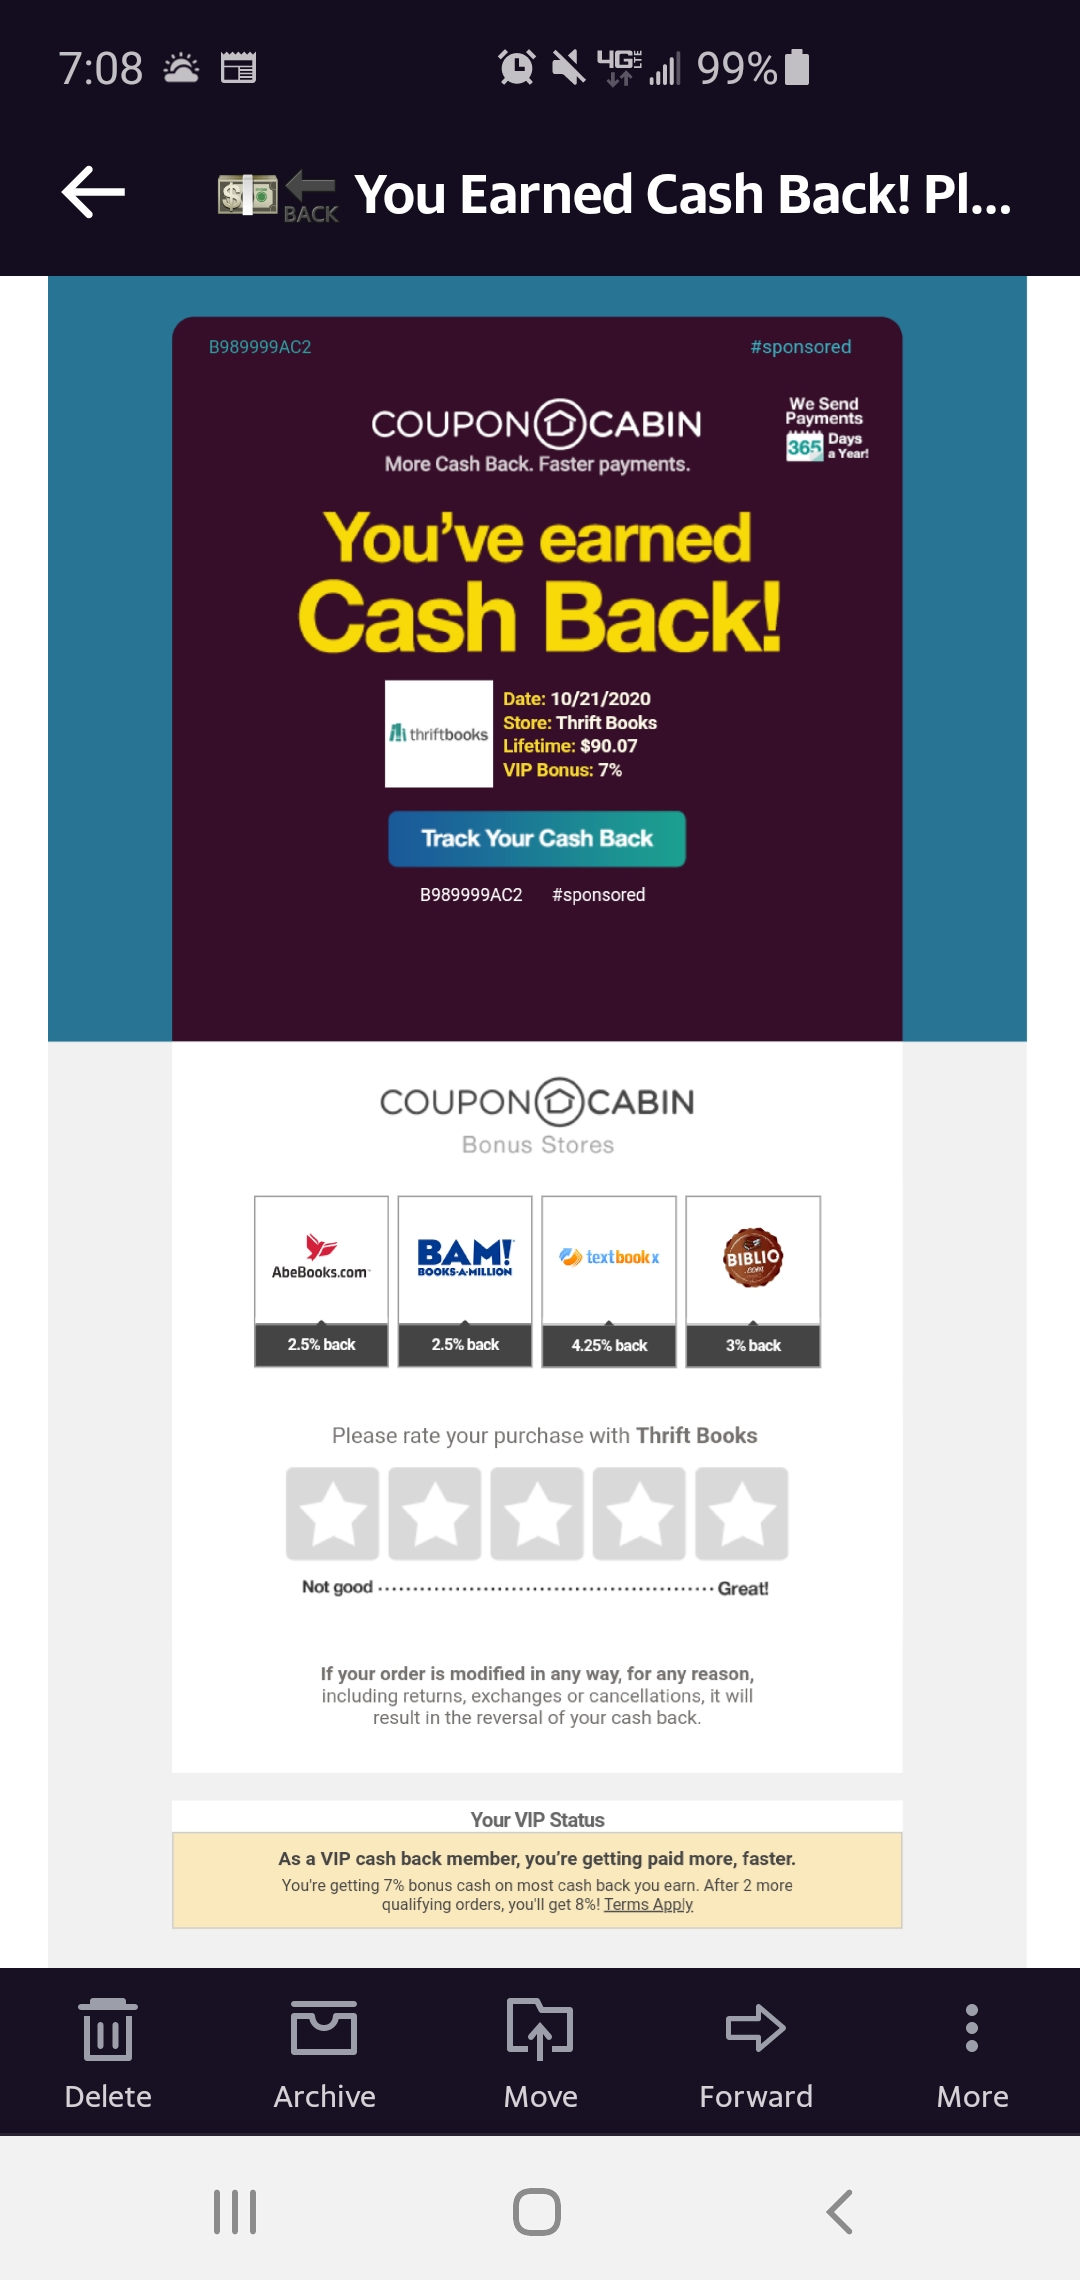 Couponcabin Reviews 1 438 Reviews Of Couponcabin Com Sitejabber